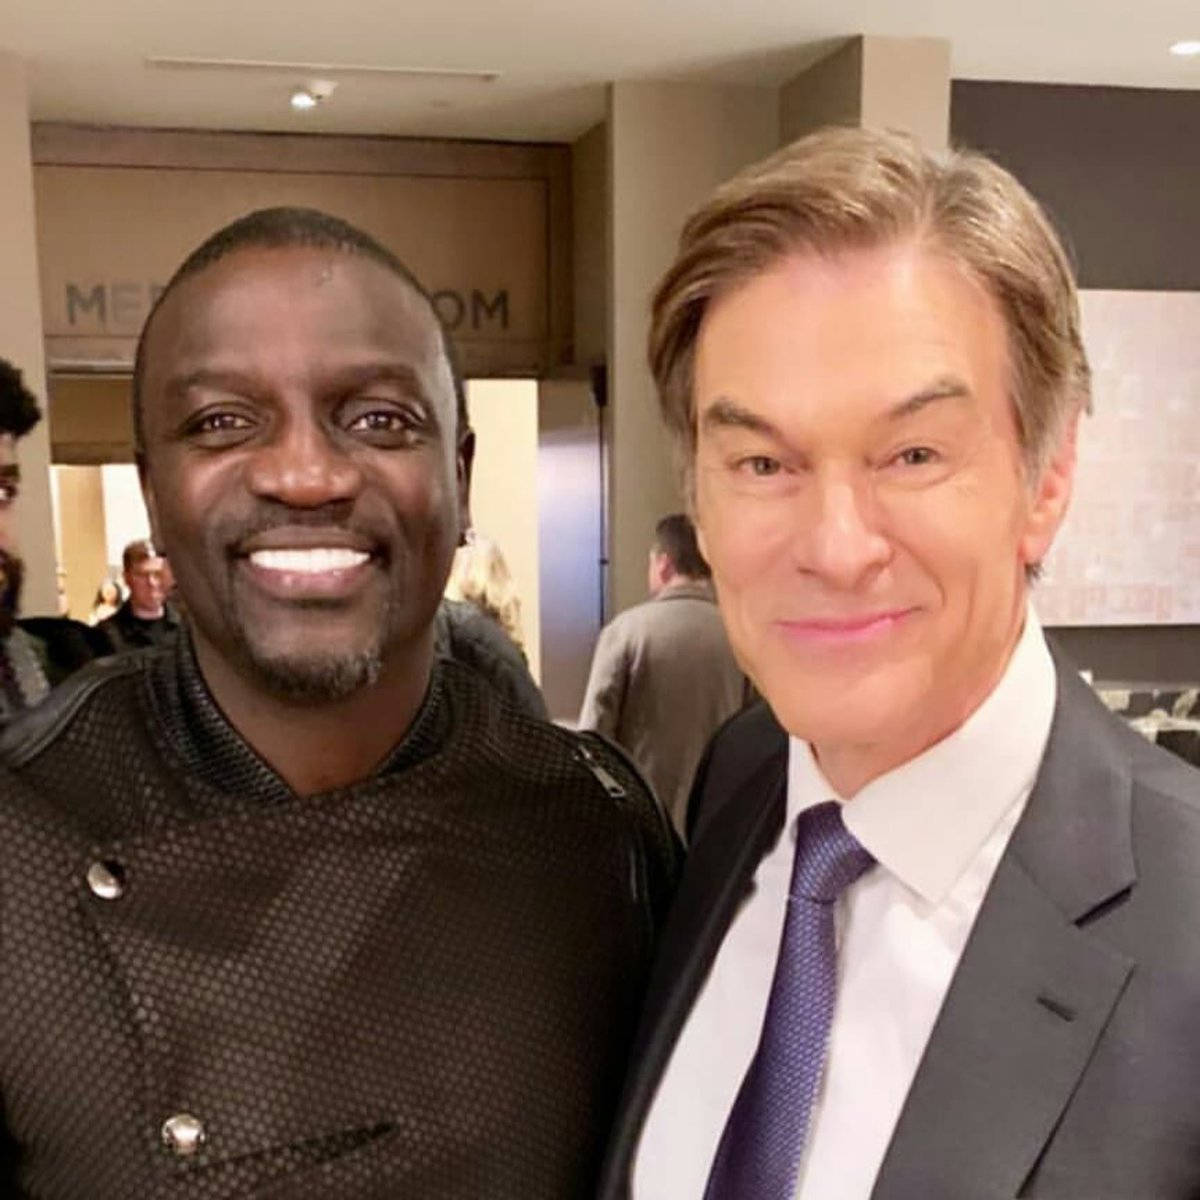 RT @Akon: @DrOz in the house ✌???? https://t.co/lp7wypkb4I